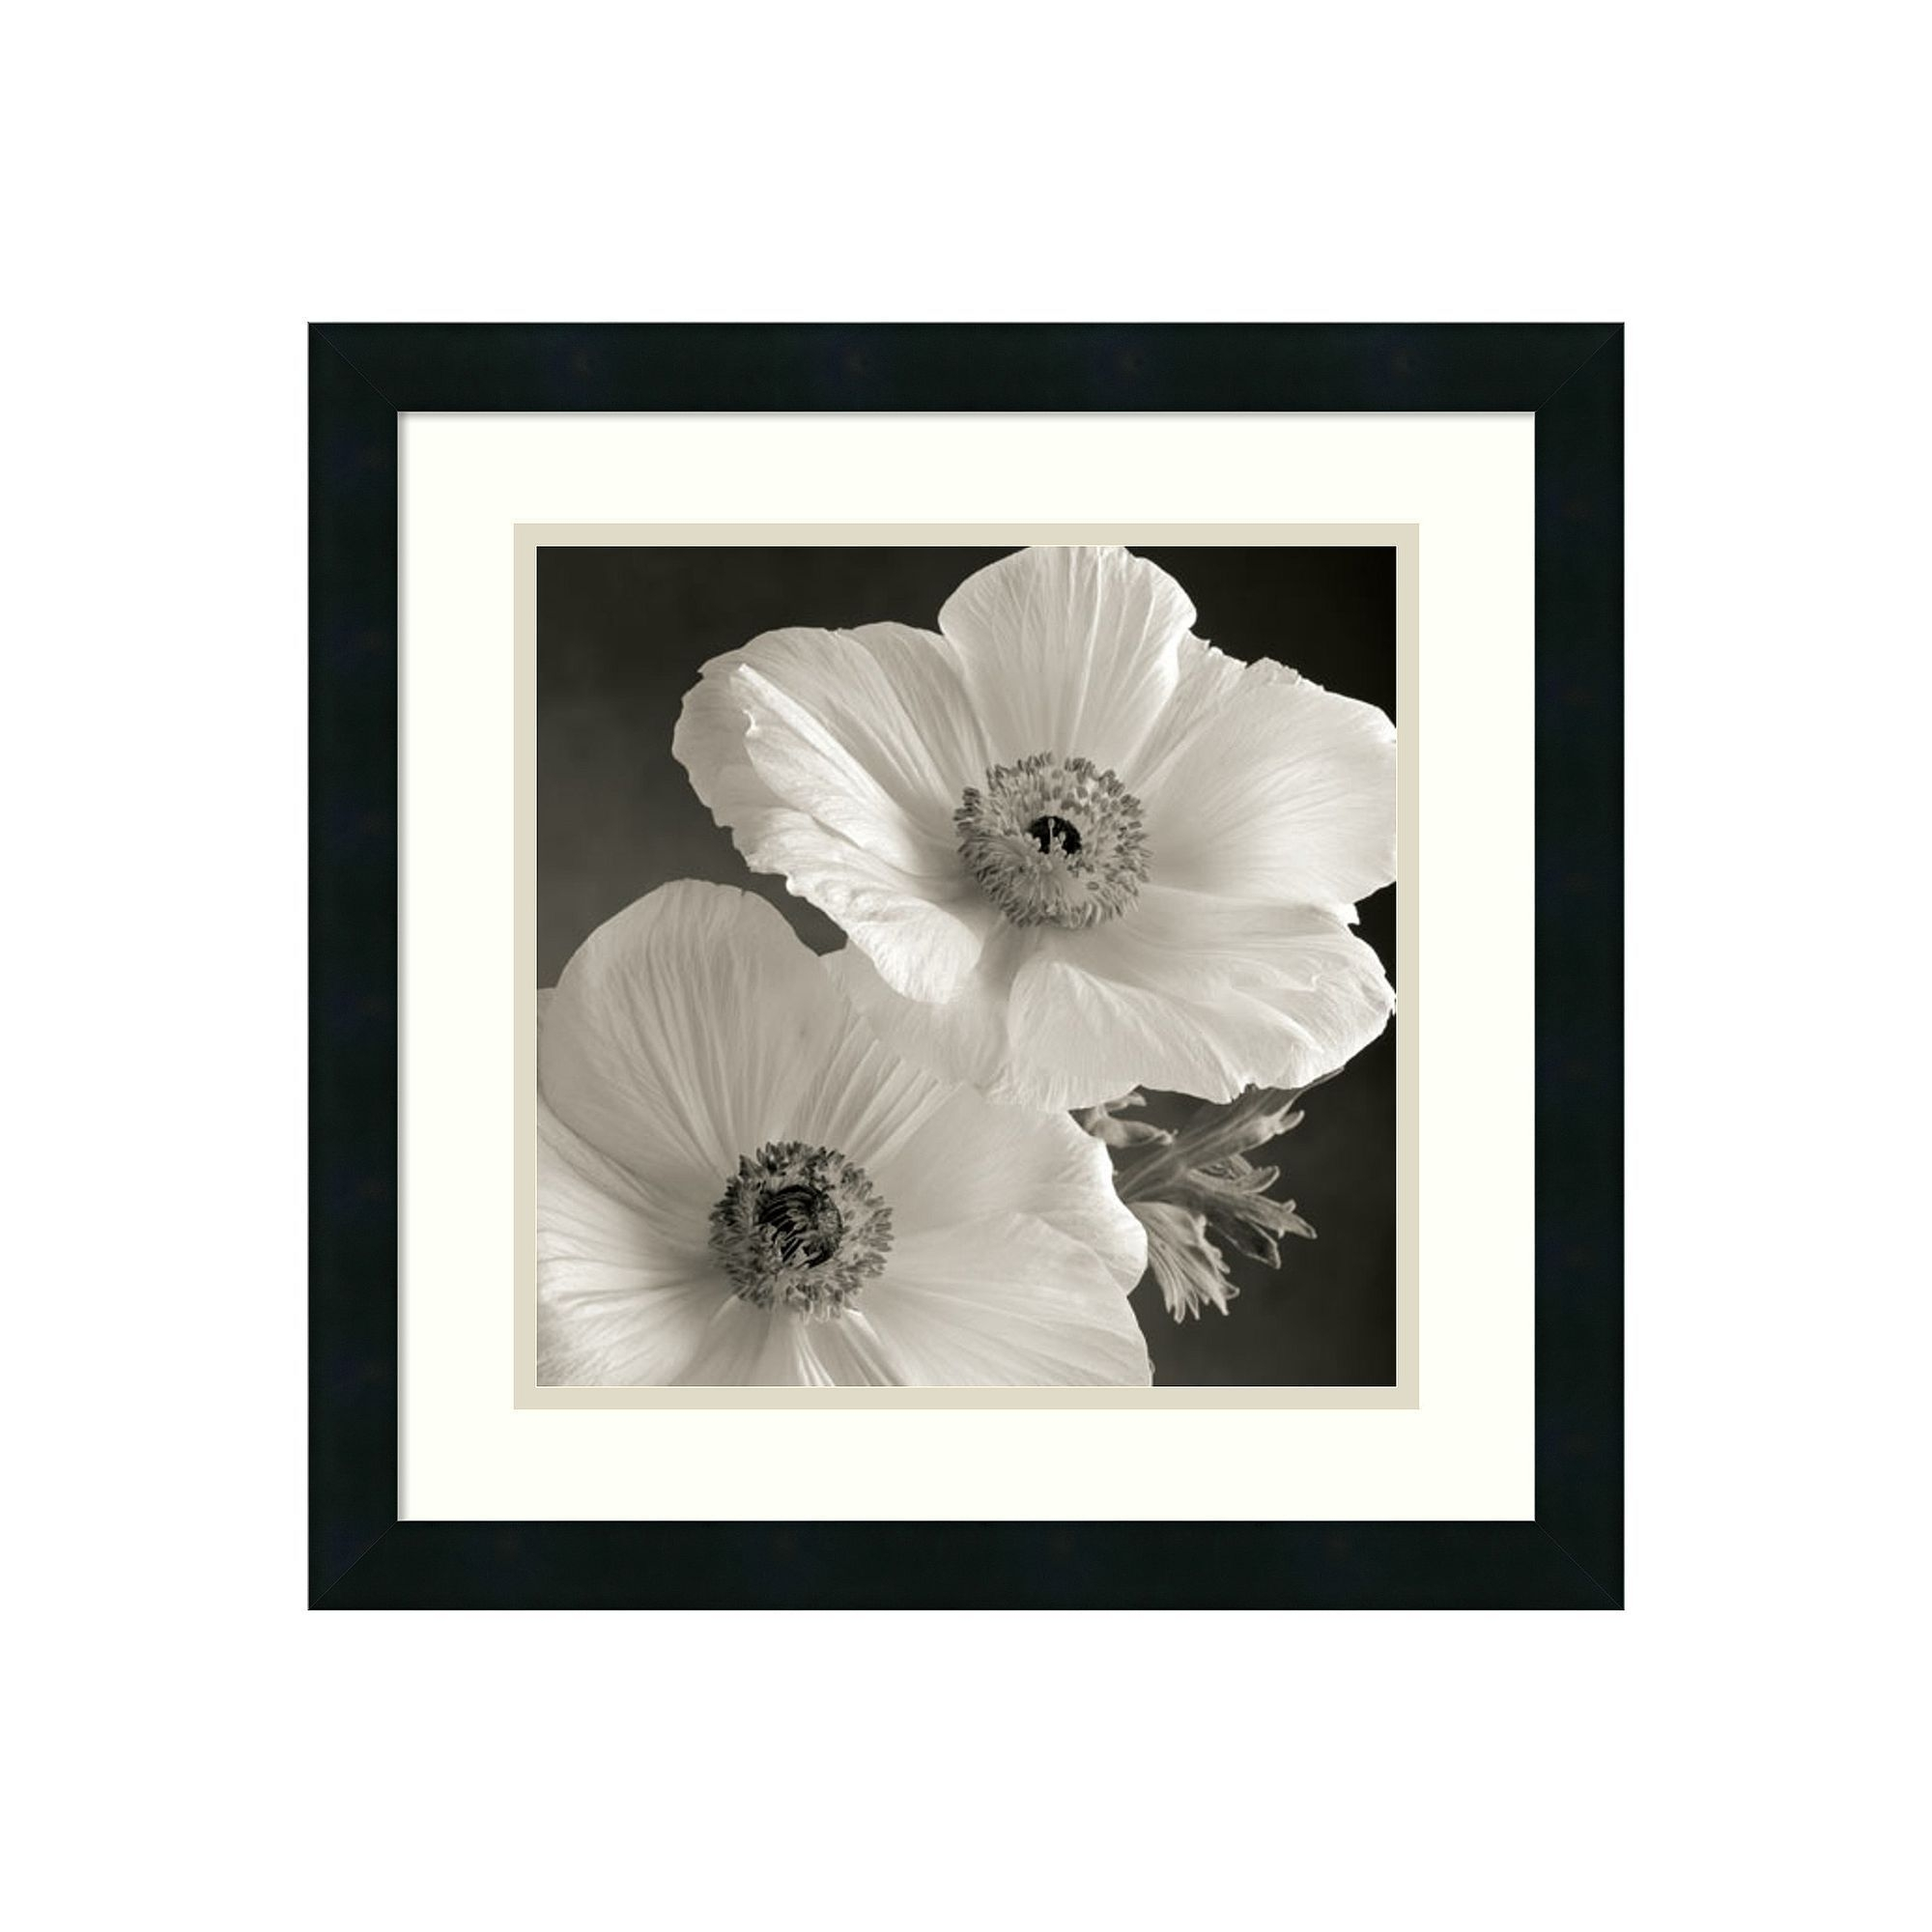 Poppy Study I'' Floral Framed Wall Art, Black | Floral, Walls And For Current Black Framed Art Prints (View 9 of 15)